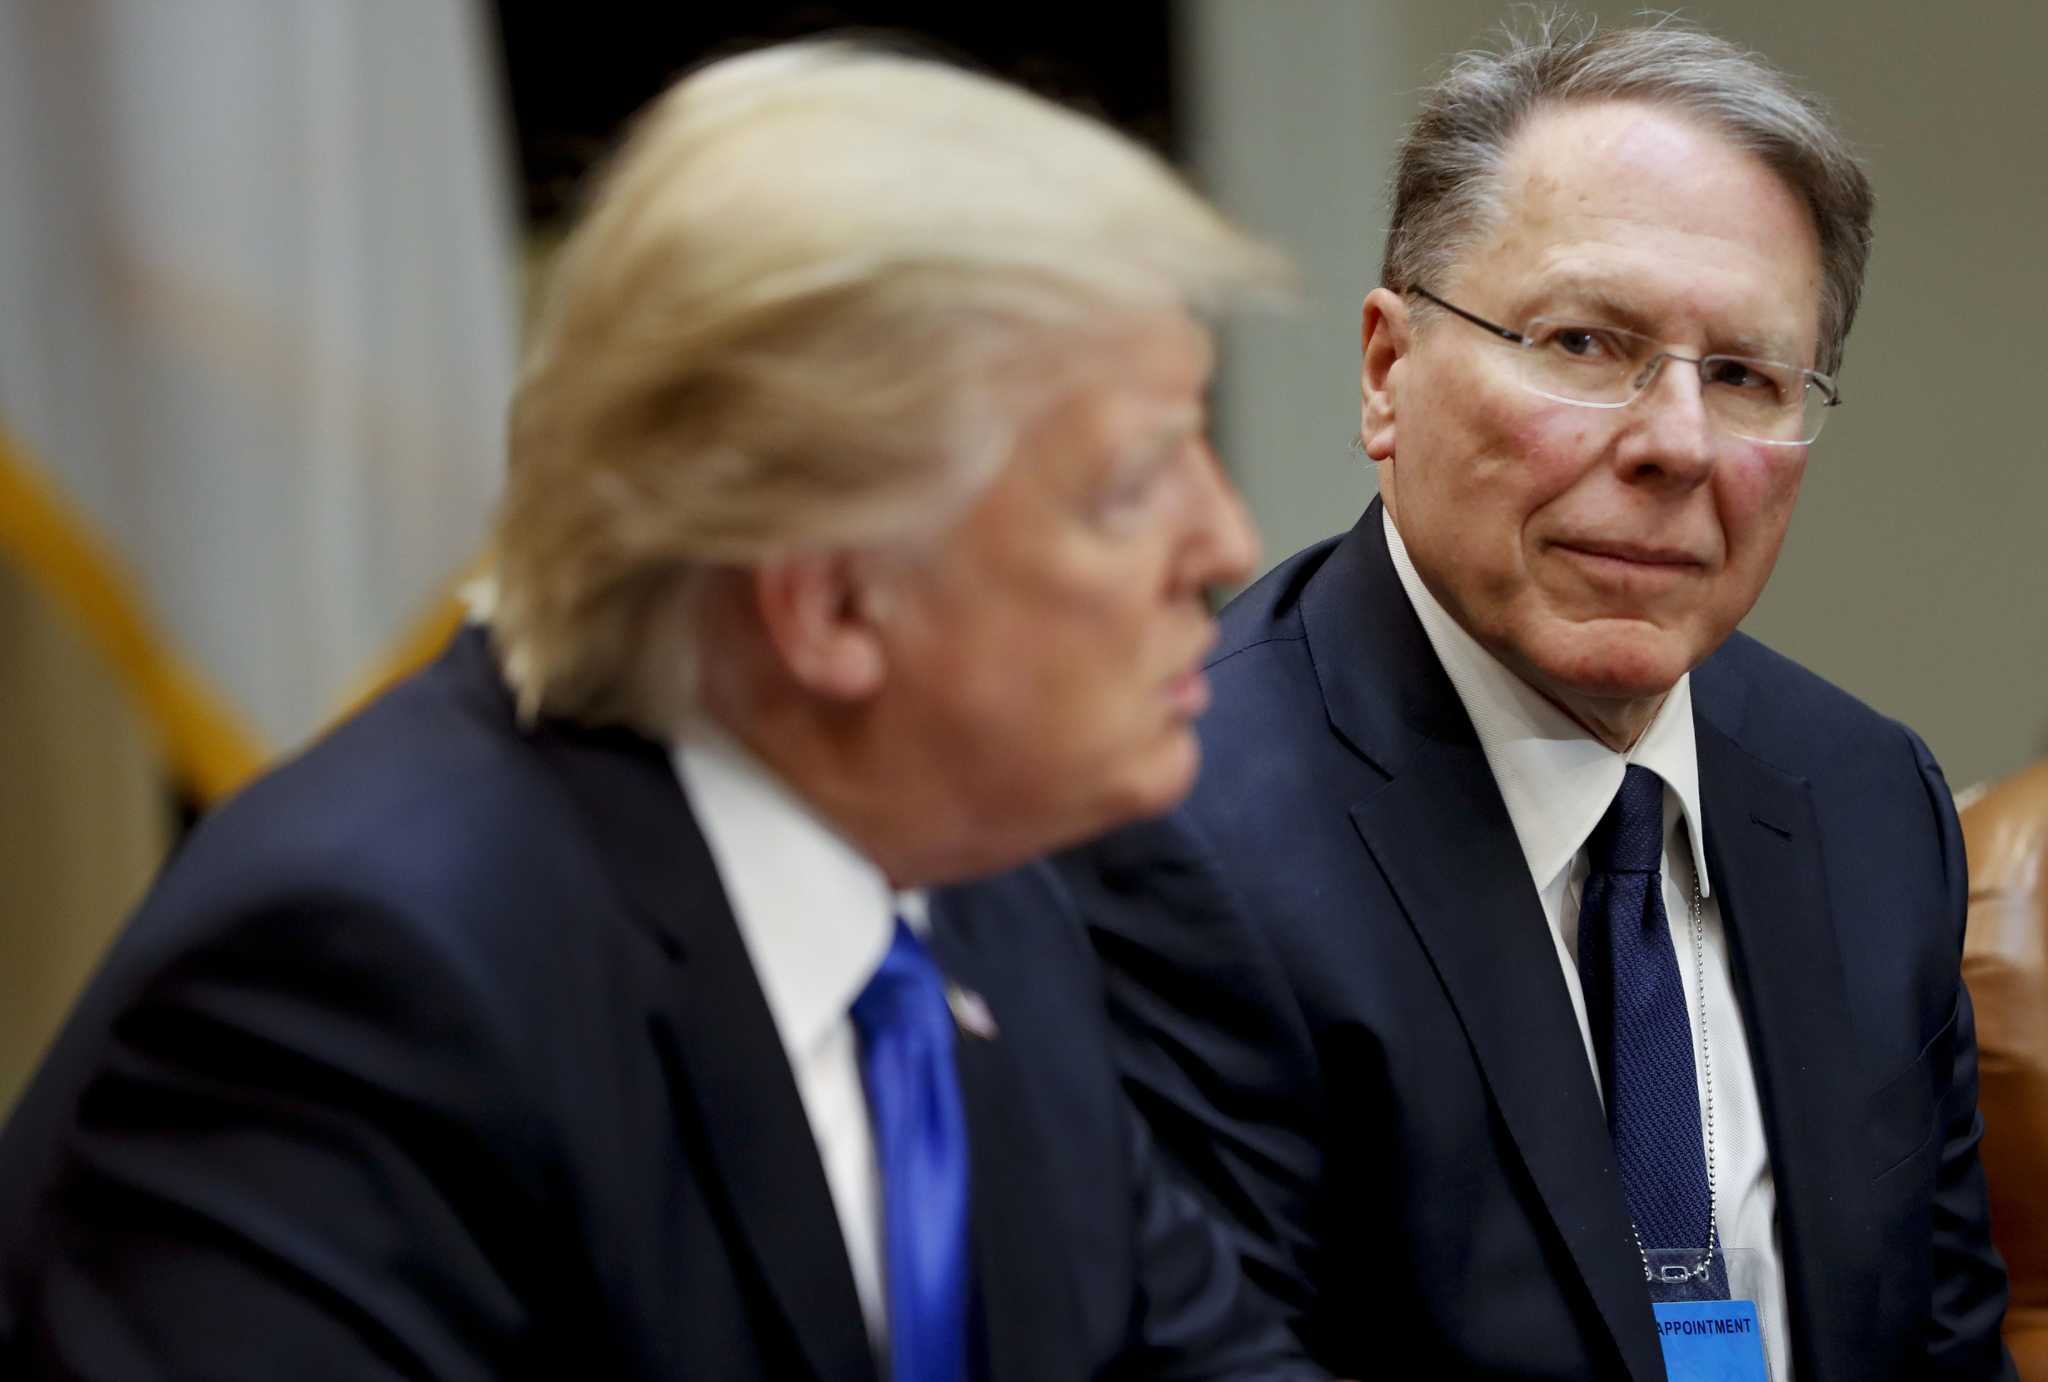 No, Trump did not host the NRA on the anniversary of the Sandy Hook massacre